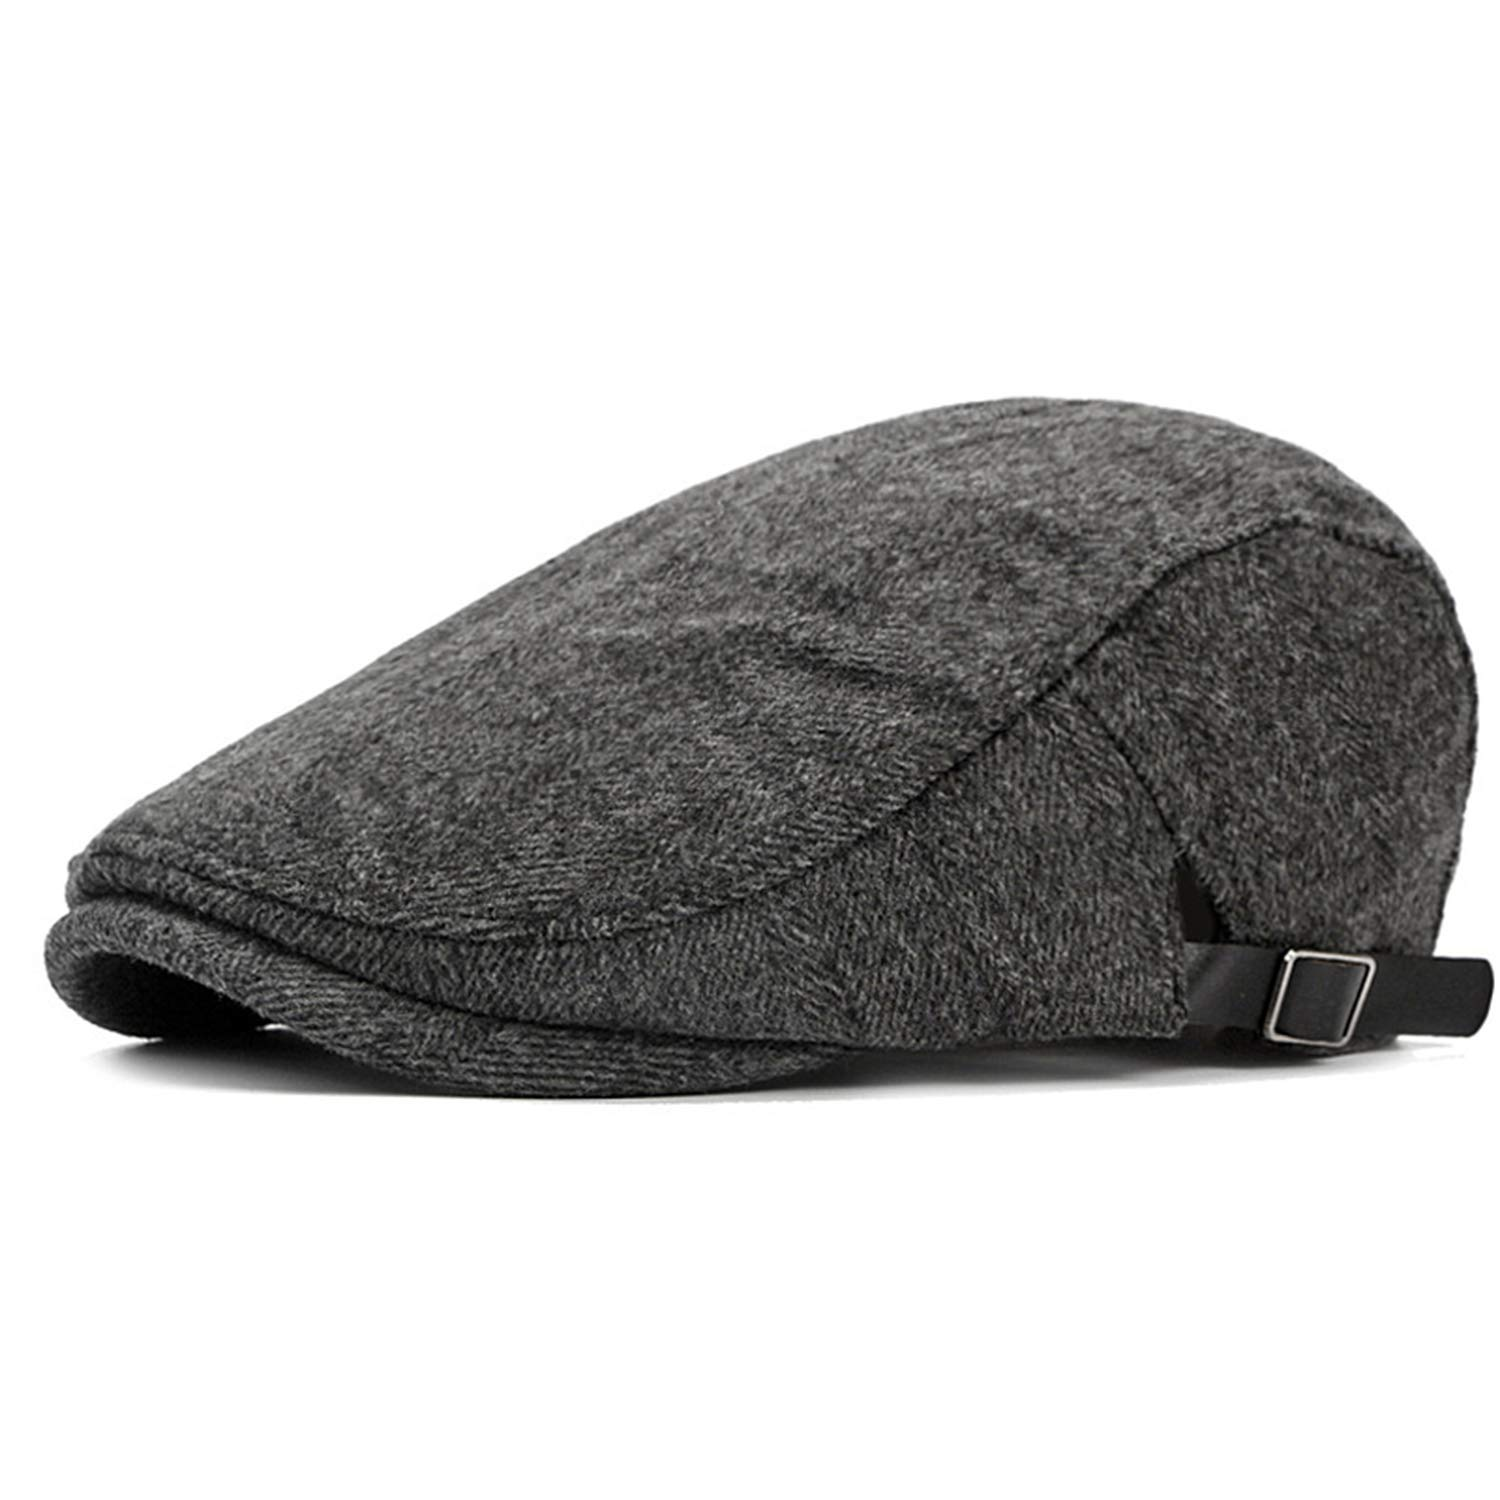 c9773805543aa Mens Beret Hat Winter Wool Male Beret Hats for Men Vintage Flat Cap Dad  Warm Russia Plaid Peaked Hats Black at Amazon Men s Clothing store